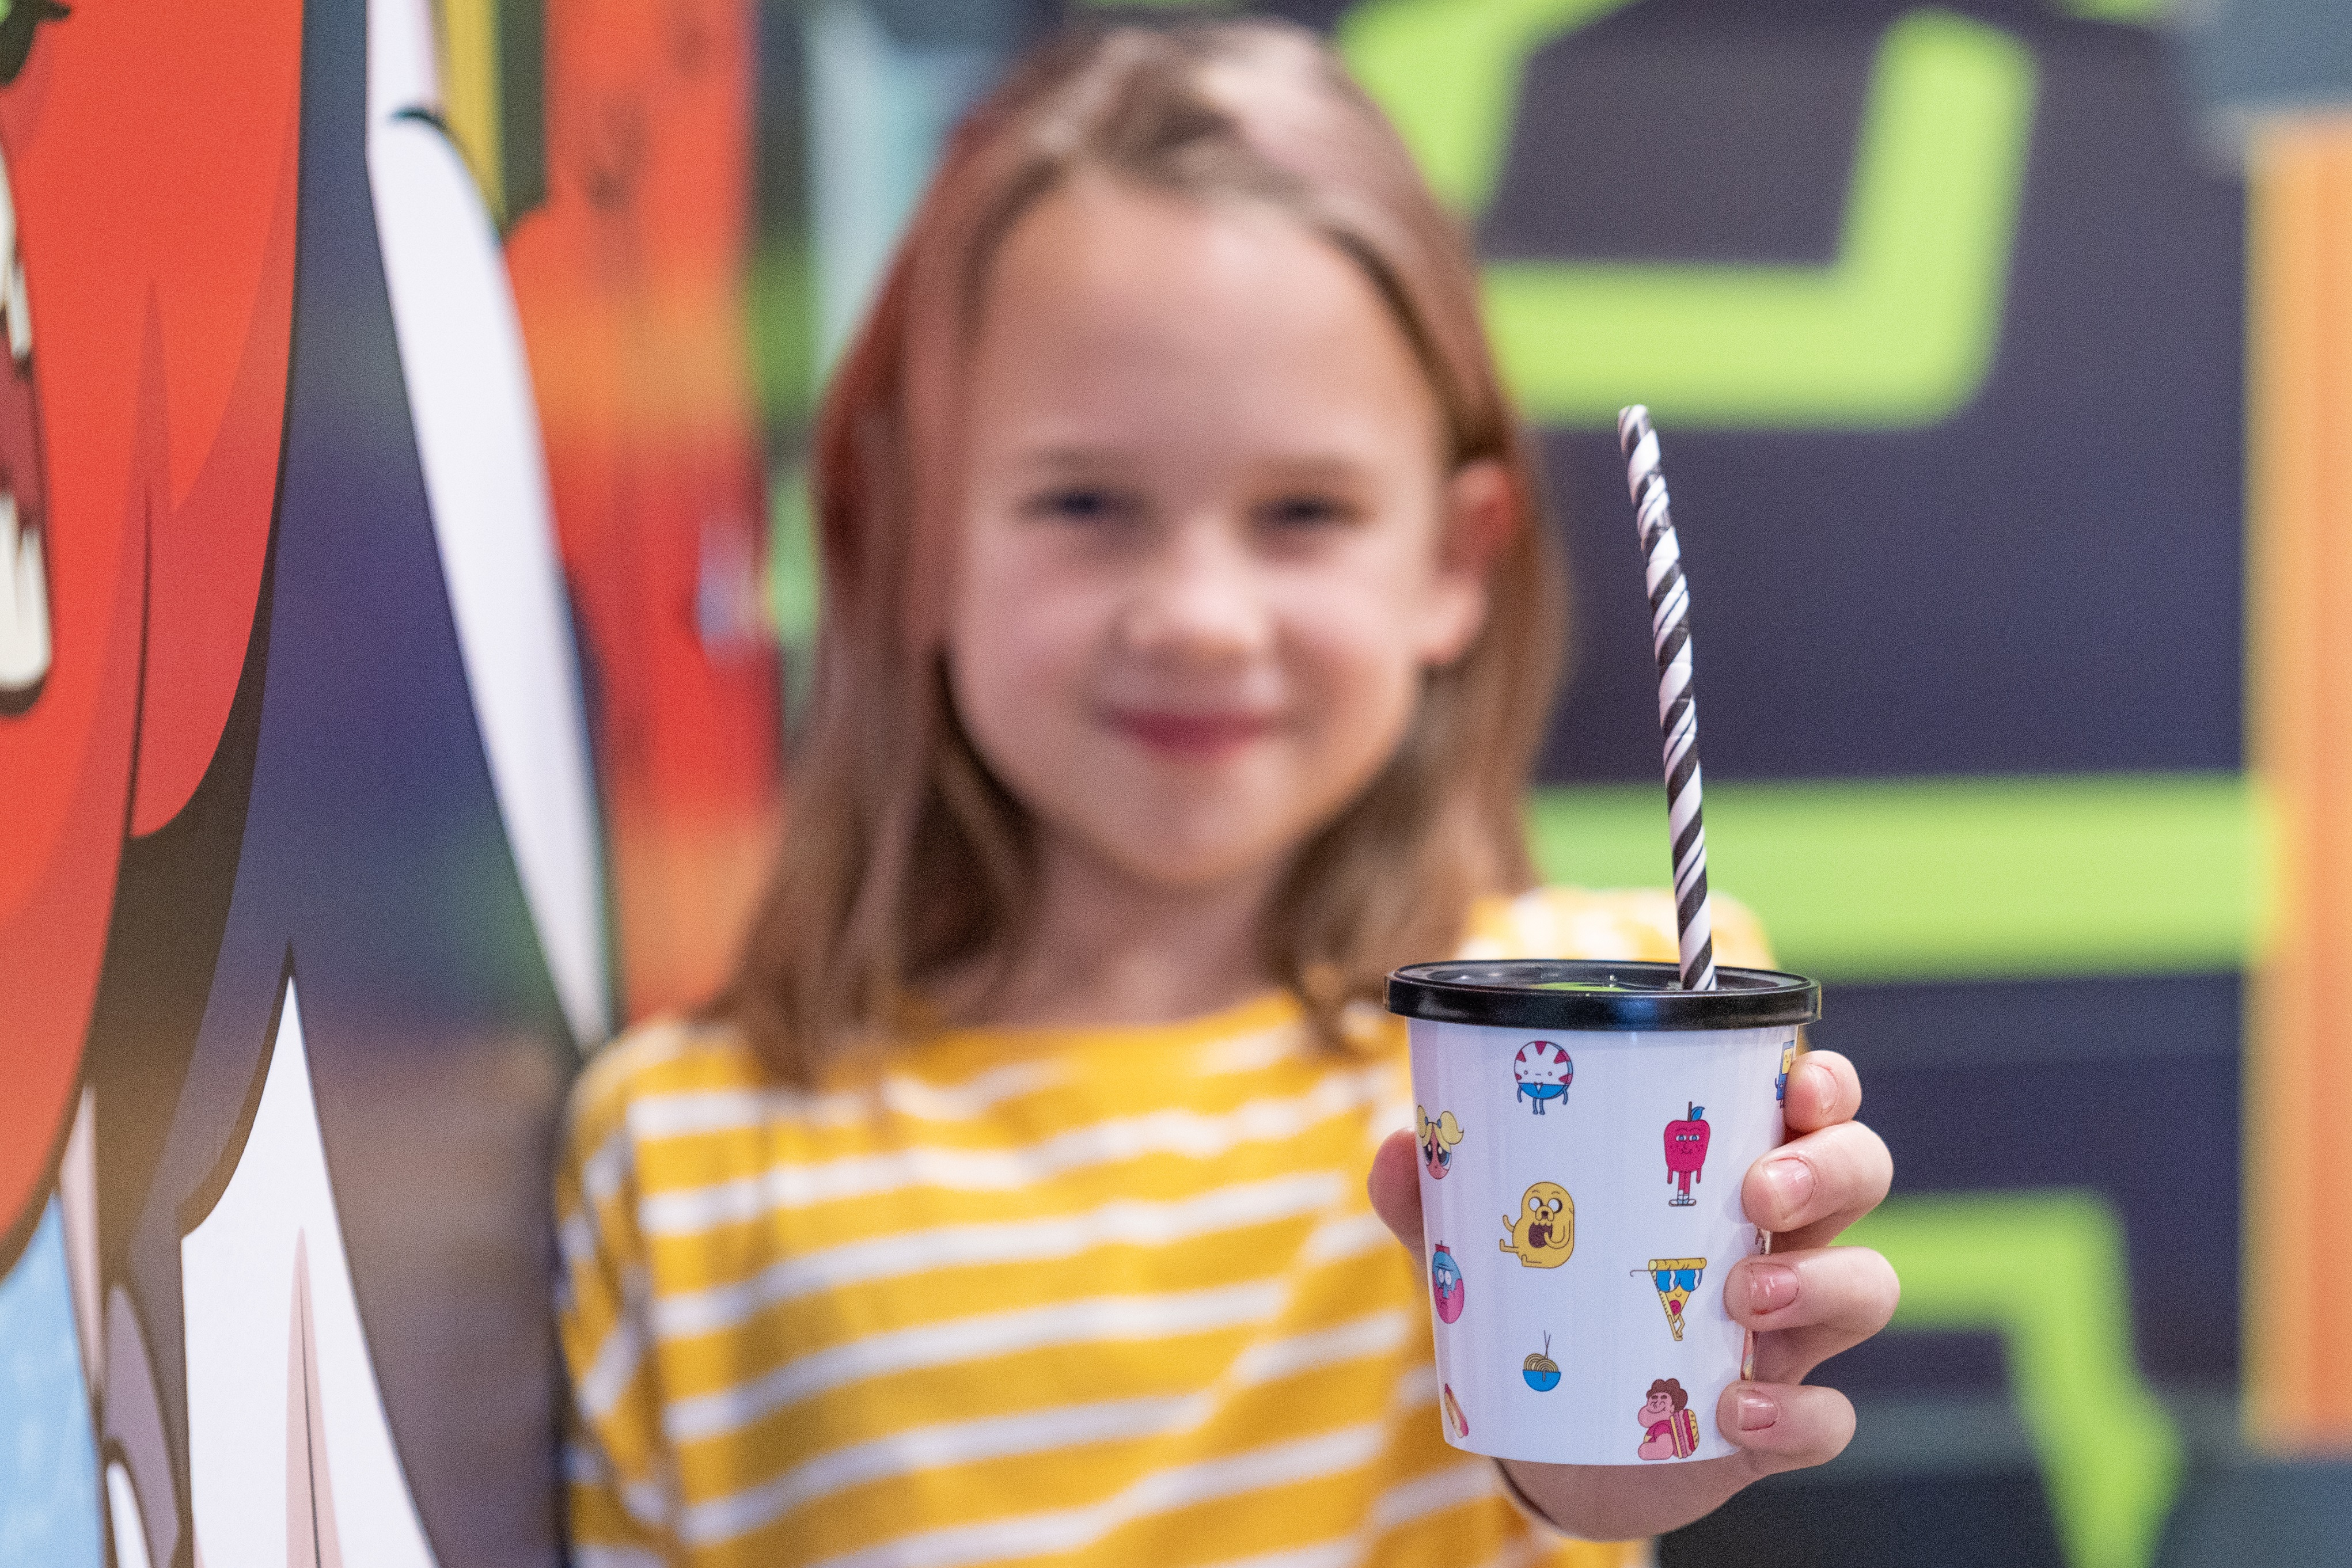 Girl holding a Cartoon Network branded drink cup